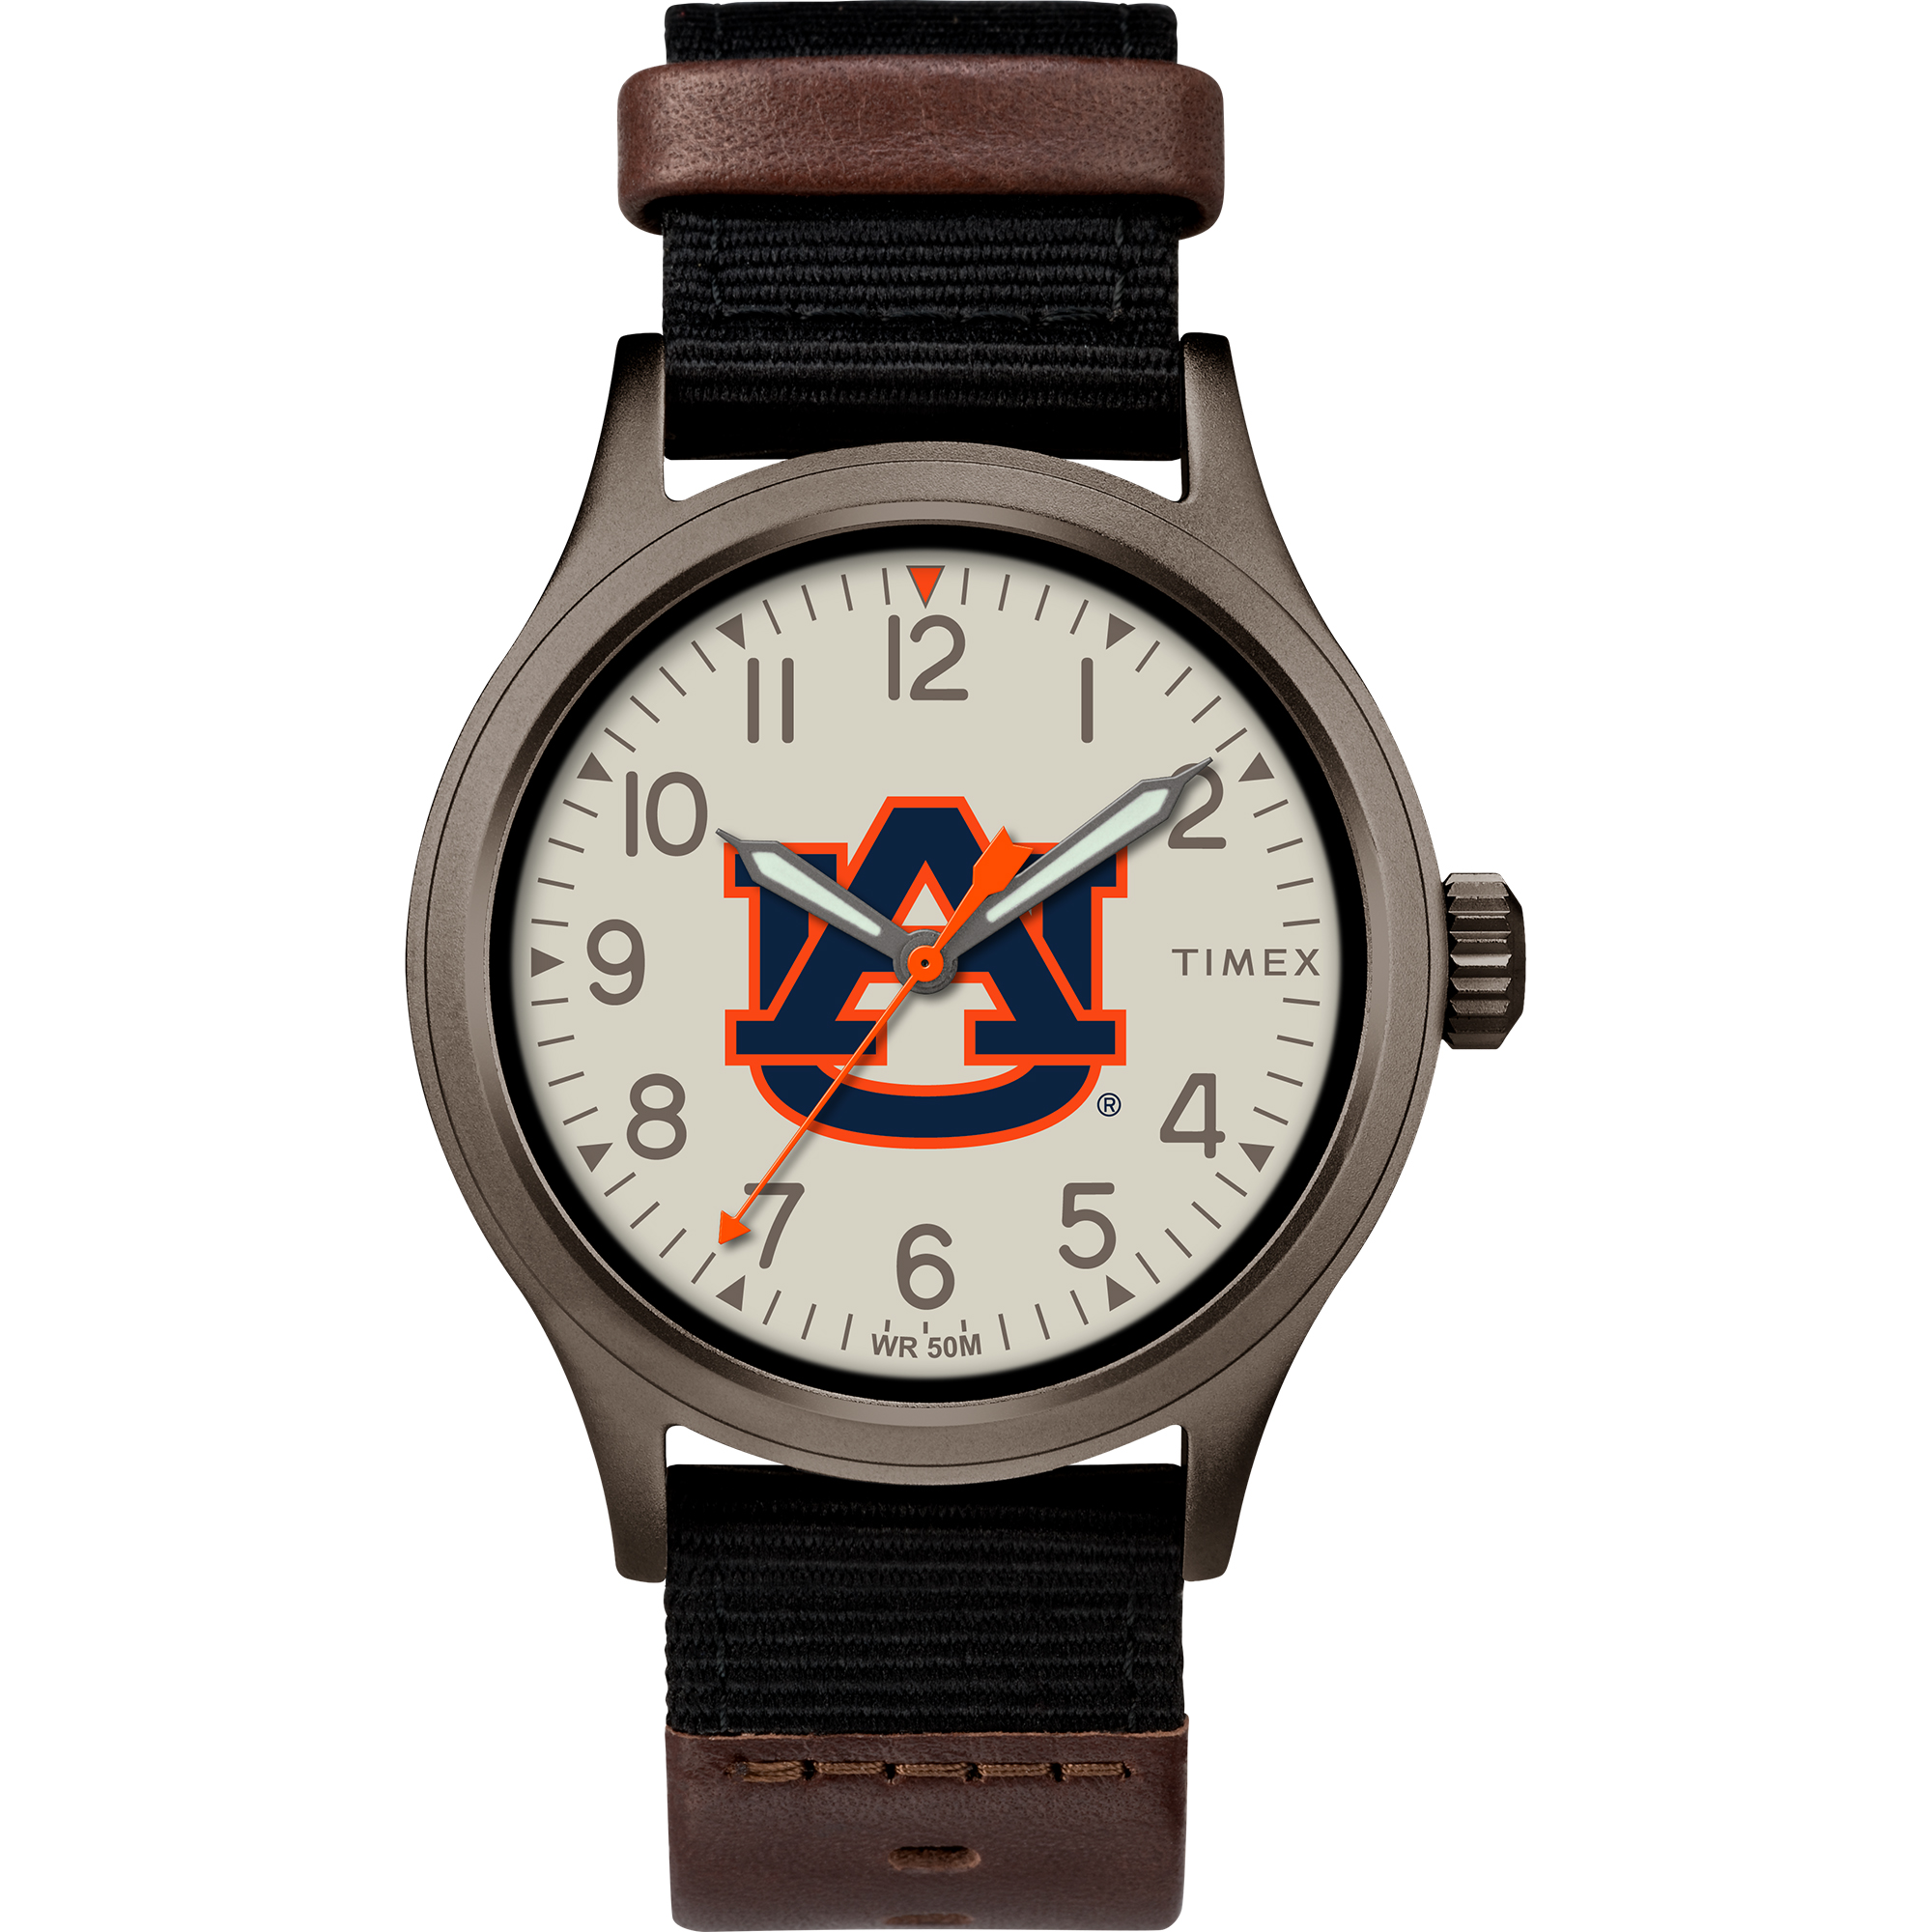 Timex - NCAA Tribute Collection Clutch Men's Watch, Auburn University Tigers